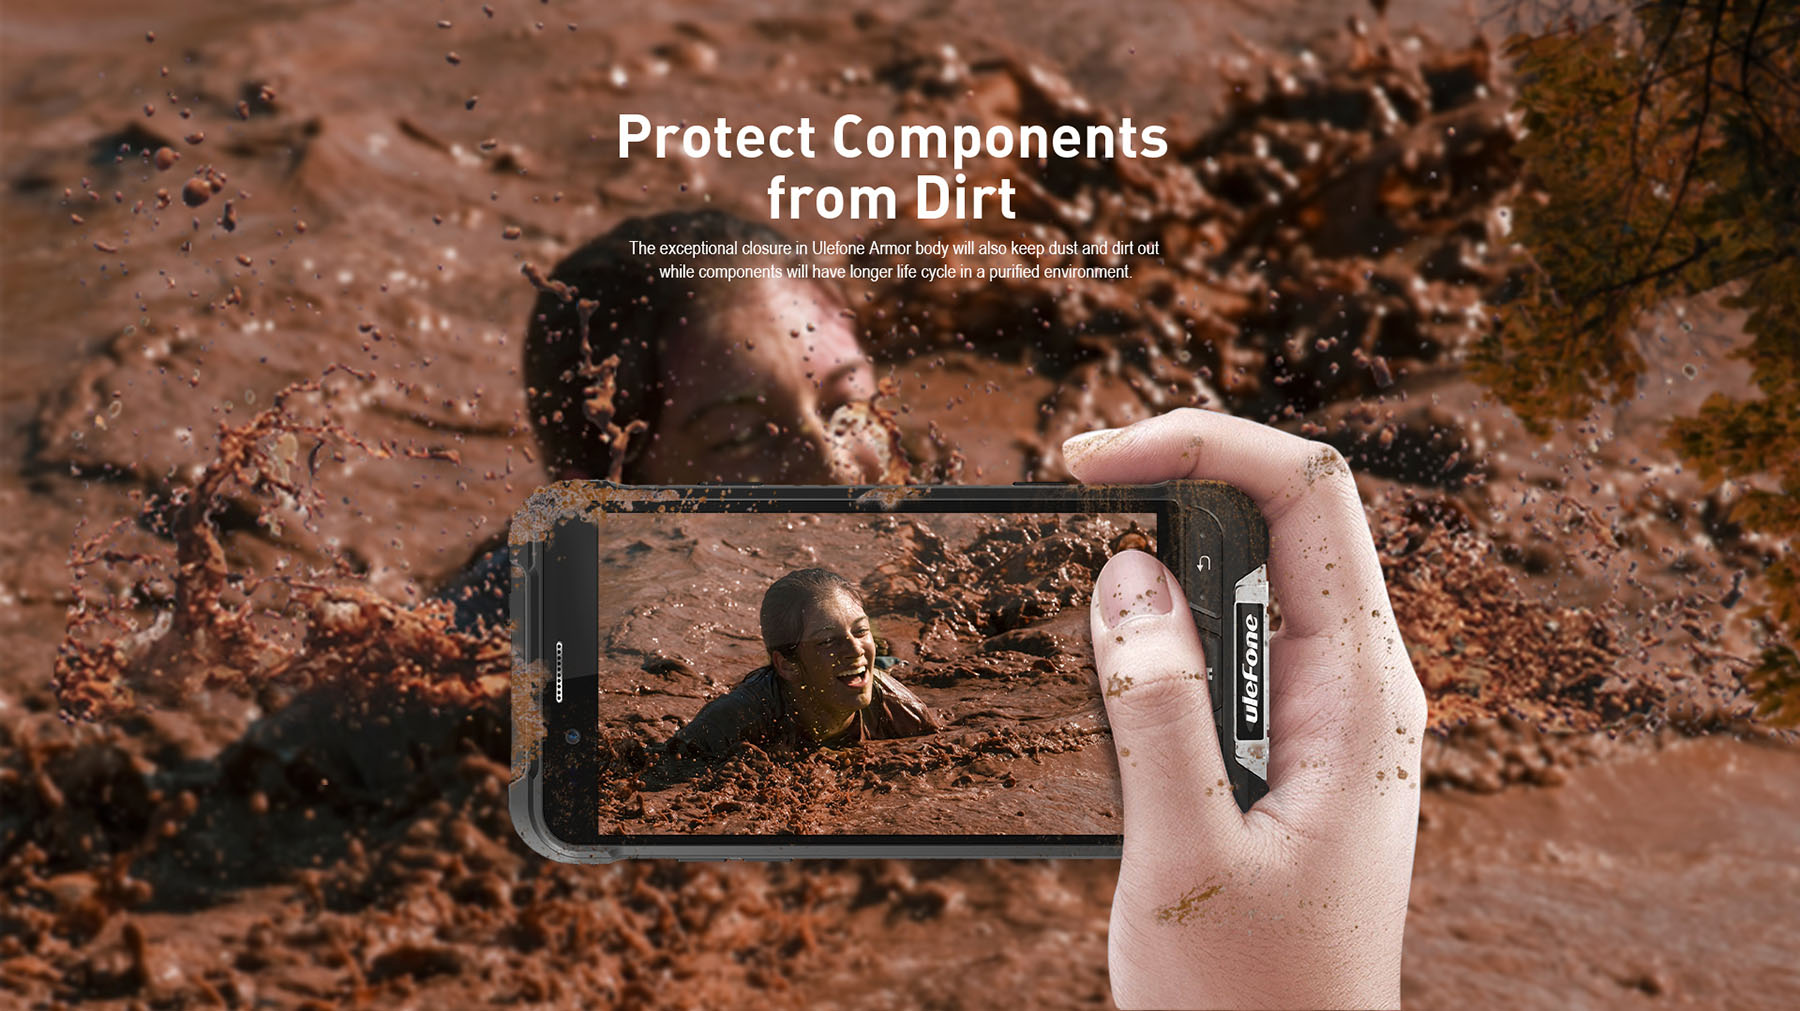 Ulefone ARMOR 4.7 inch 4G Smartphone Android 6.0 MTK6753 Octa Core 1.3GHz 3GB RAM 32GB ROM 5MP + 13MP Cameras IP68 Waterproof OTG NFC Corning Gorilla Glass 3